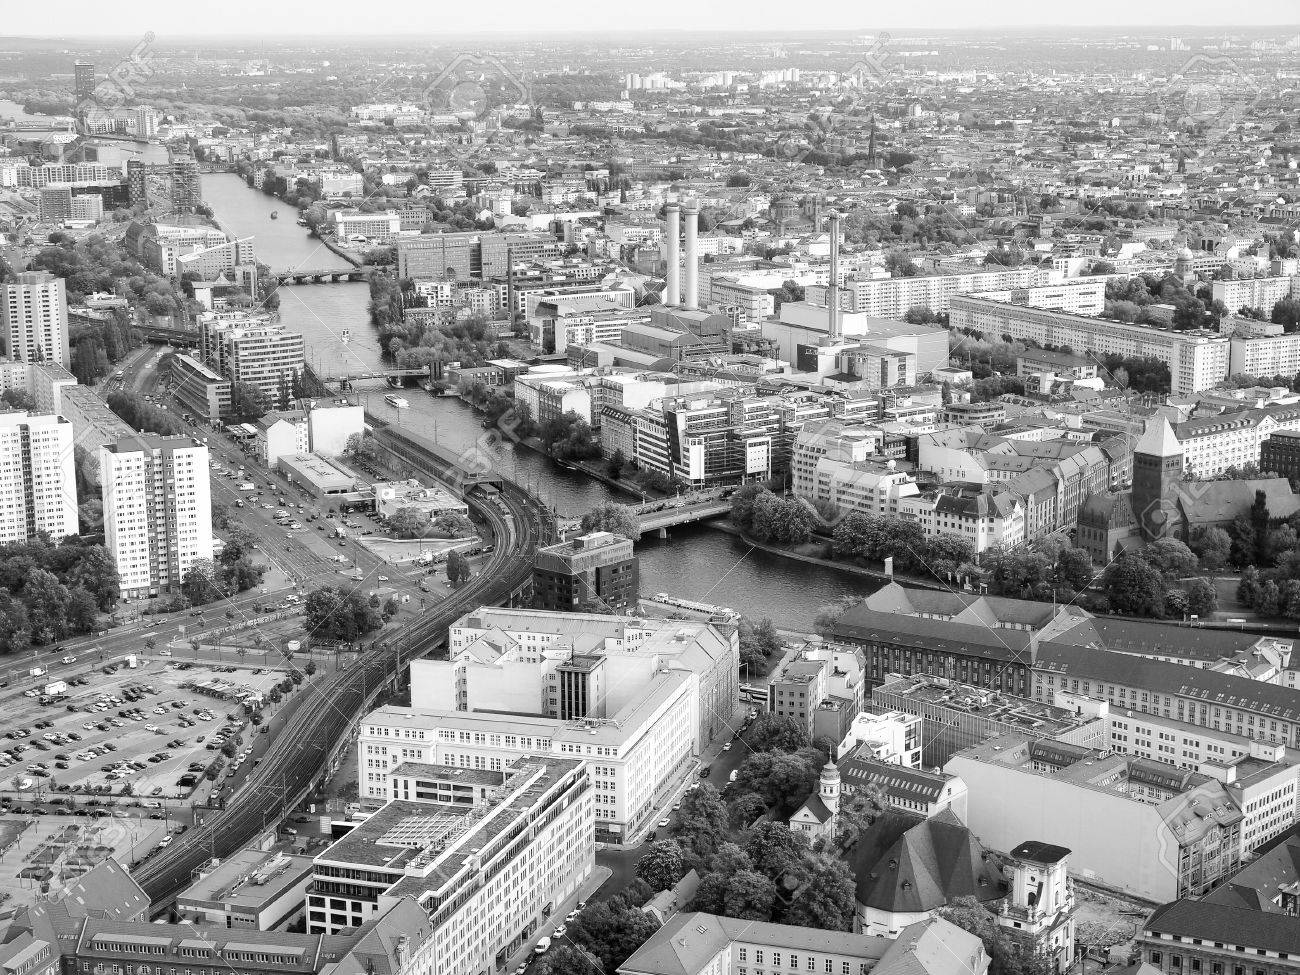 Aerial View Of The City Berlin In Germany Black And White Stock Photo